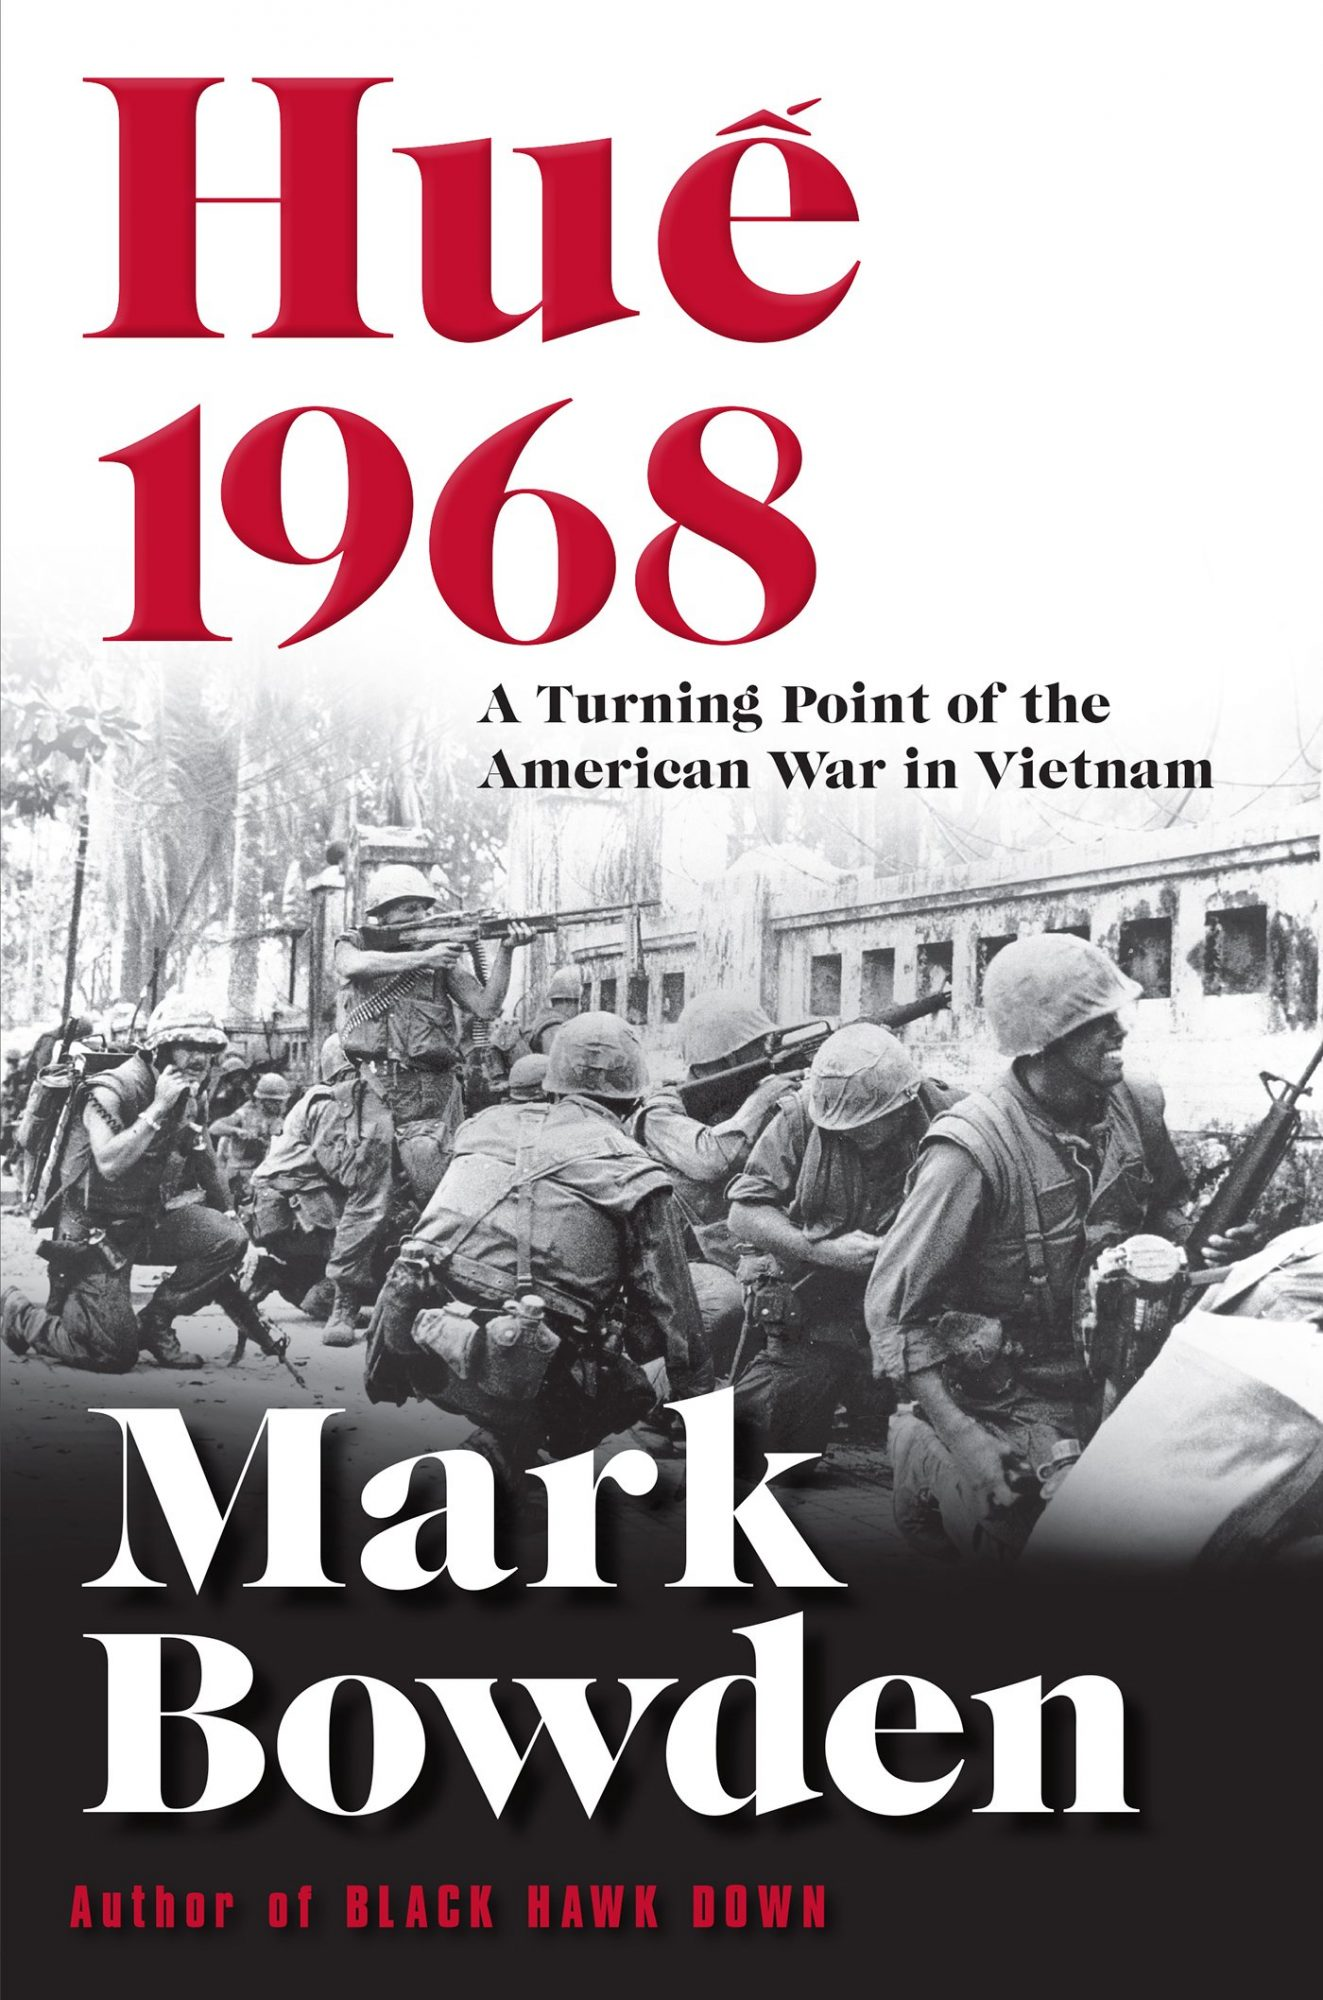 Hue, 1968: A Turning Point of the American War in Vietnam by Mark Bowden